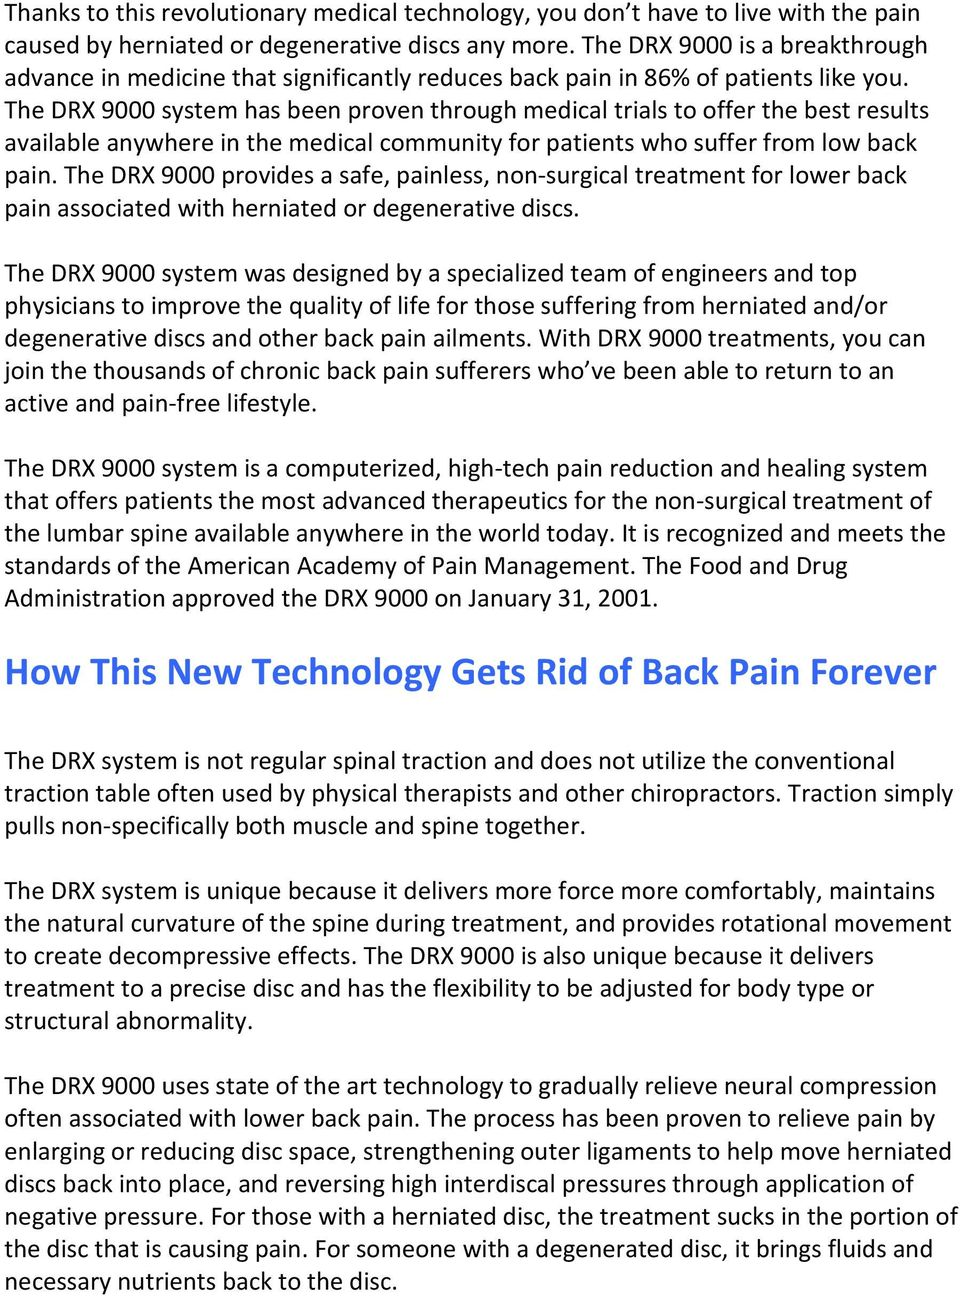 The DRX 9000 system has been proven through medical trials to offer the best results available anywhere in the medical community for patients who suffer from low back pain.